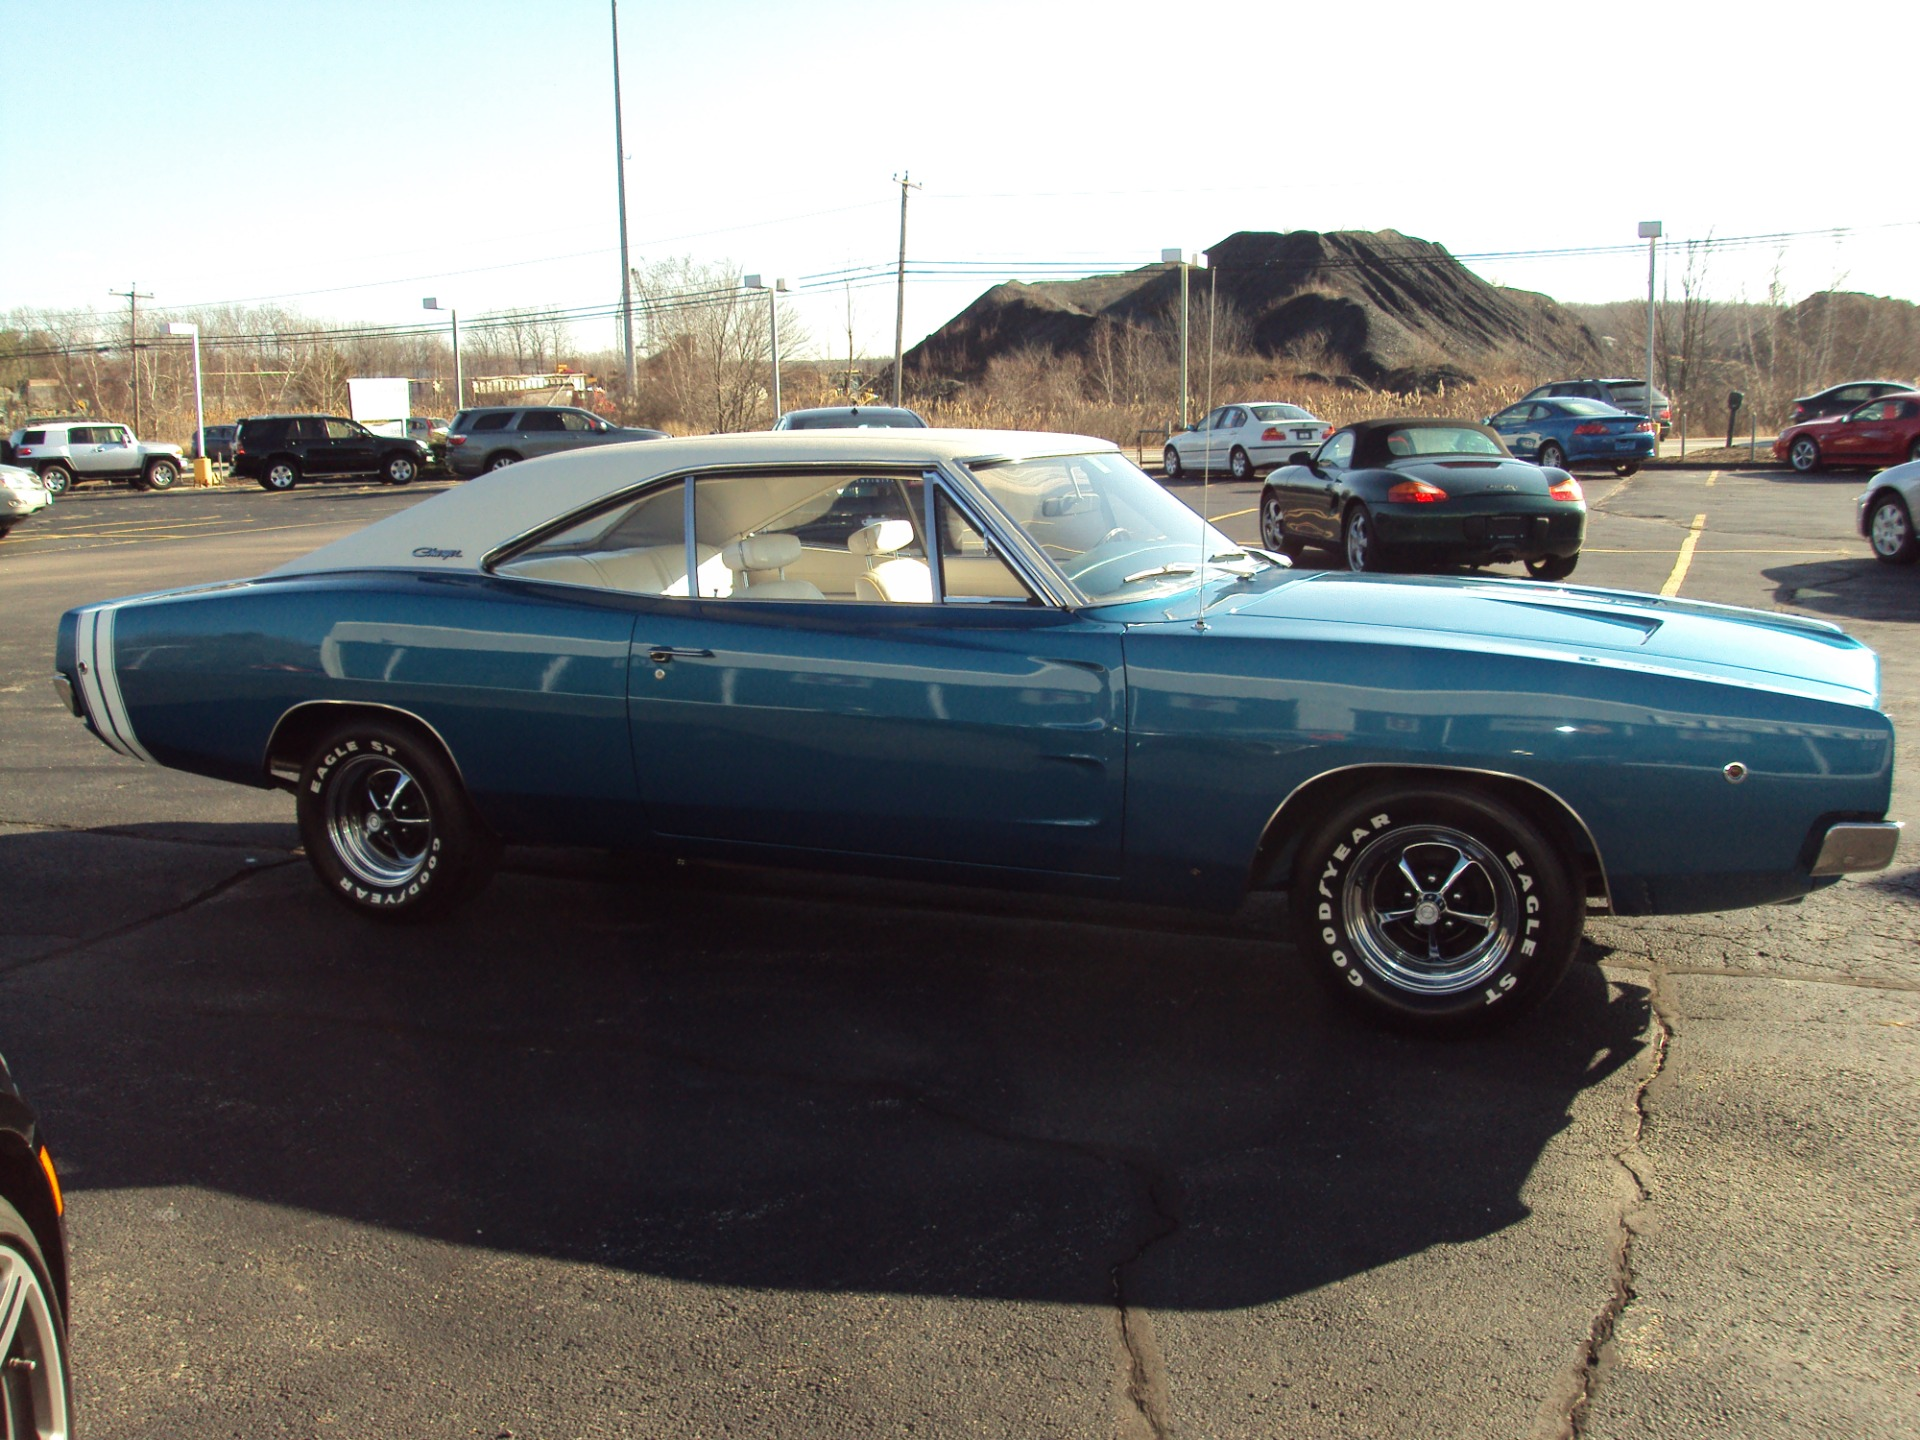 1968 Charger For Sale >> 1968 Dodge Charger RT Stock # JC68RT for sale near Smithfield, RI | RI Dodge Dealer